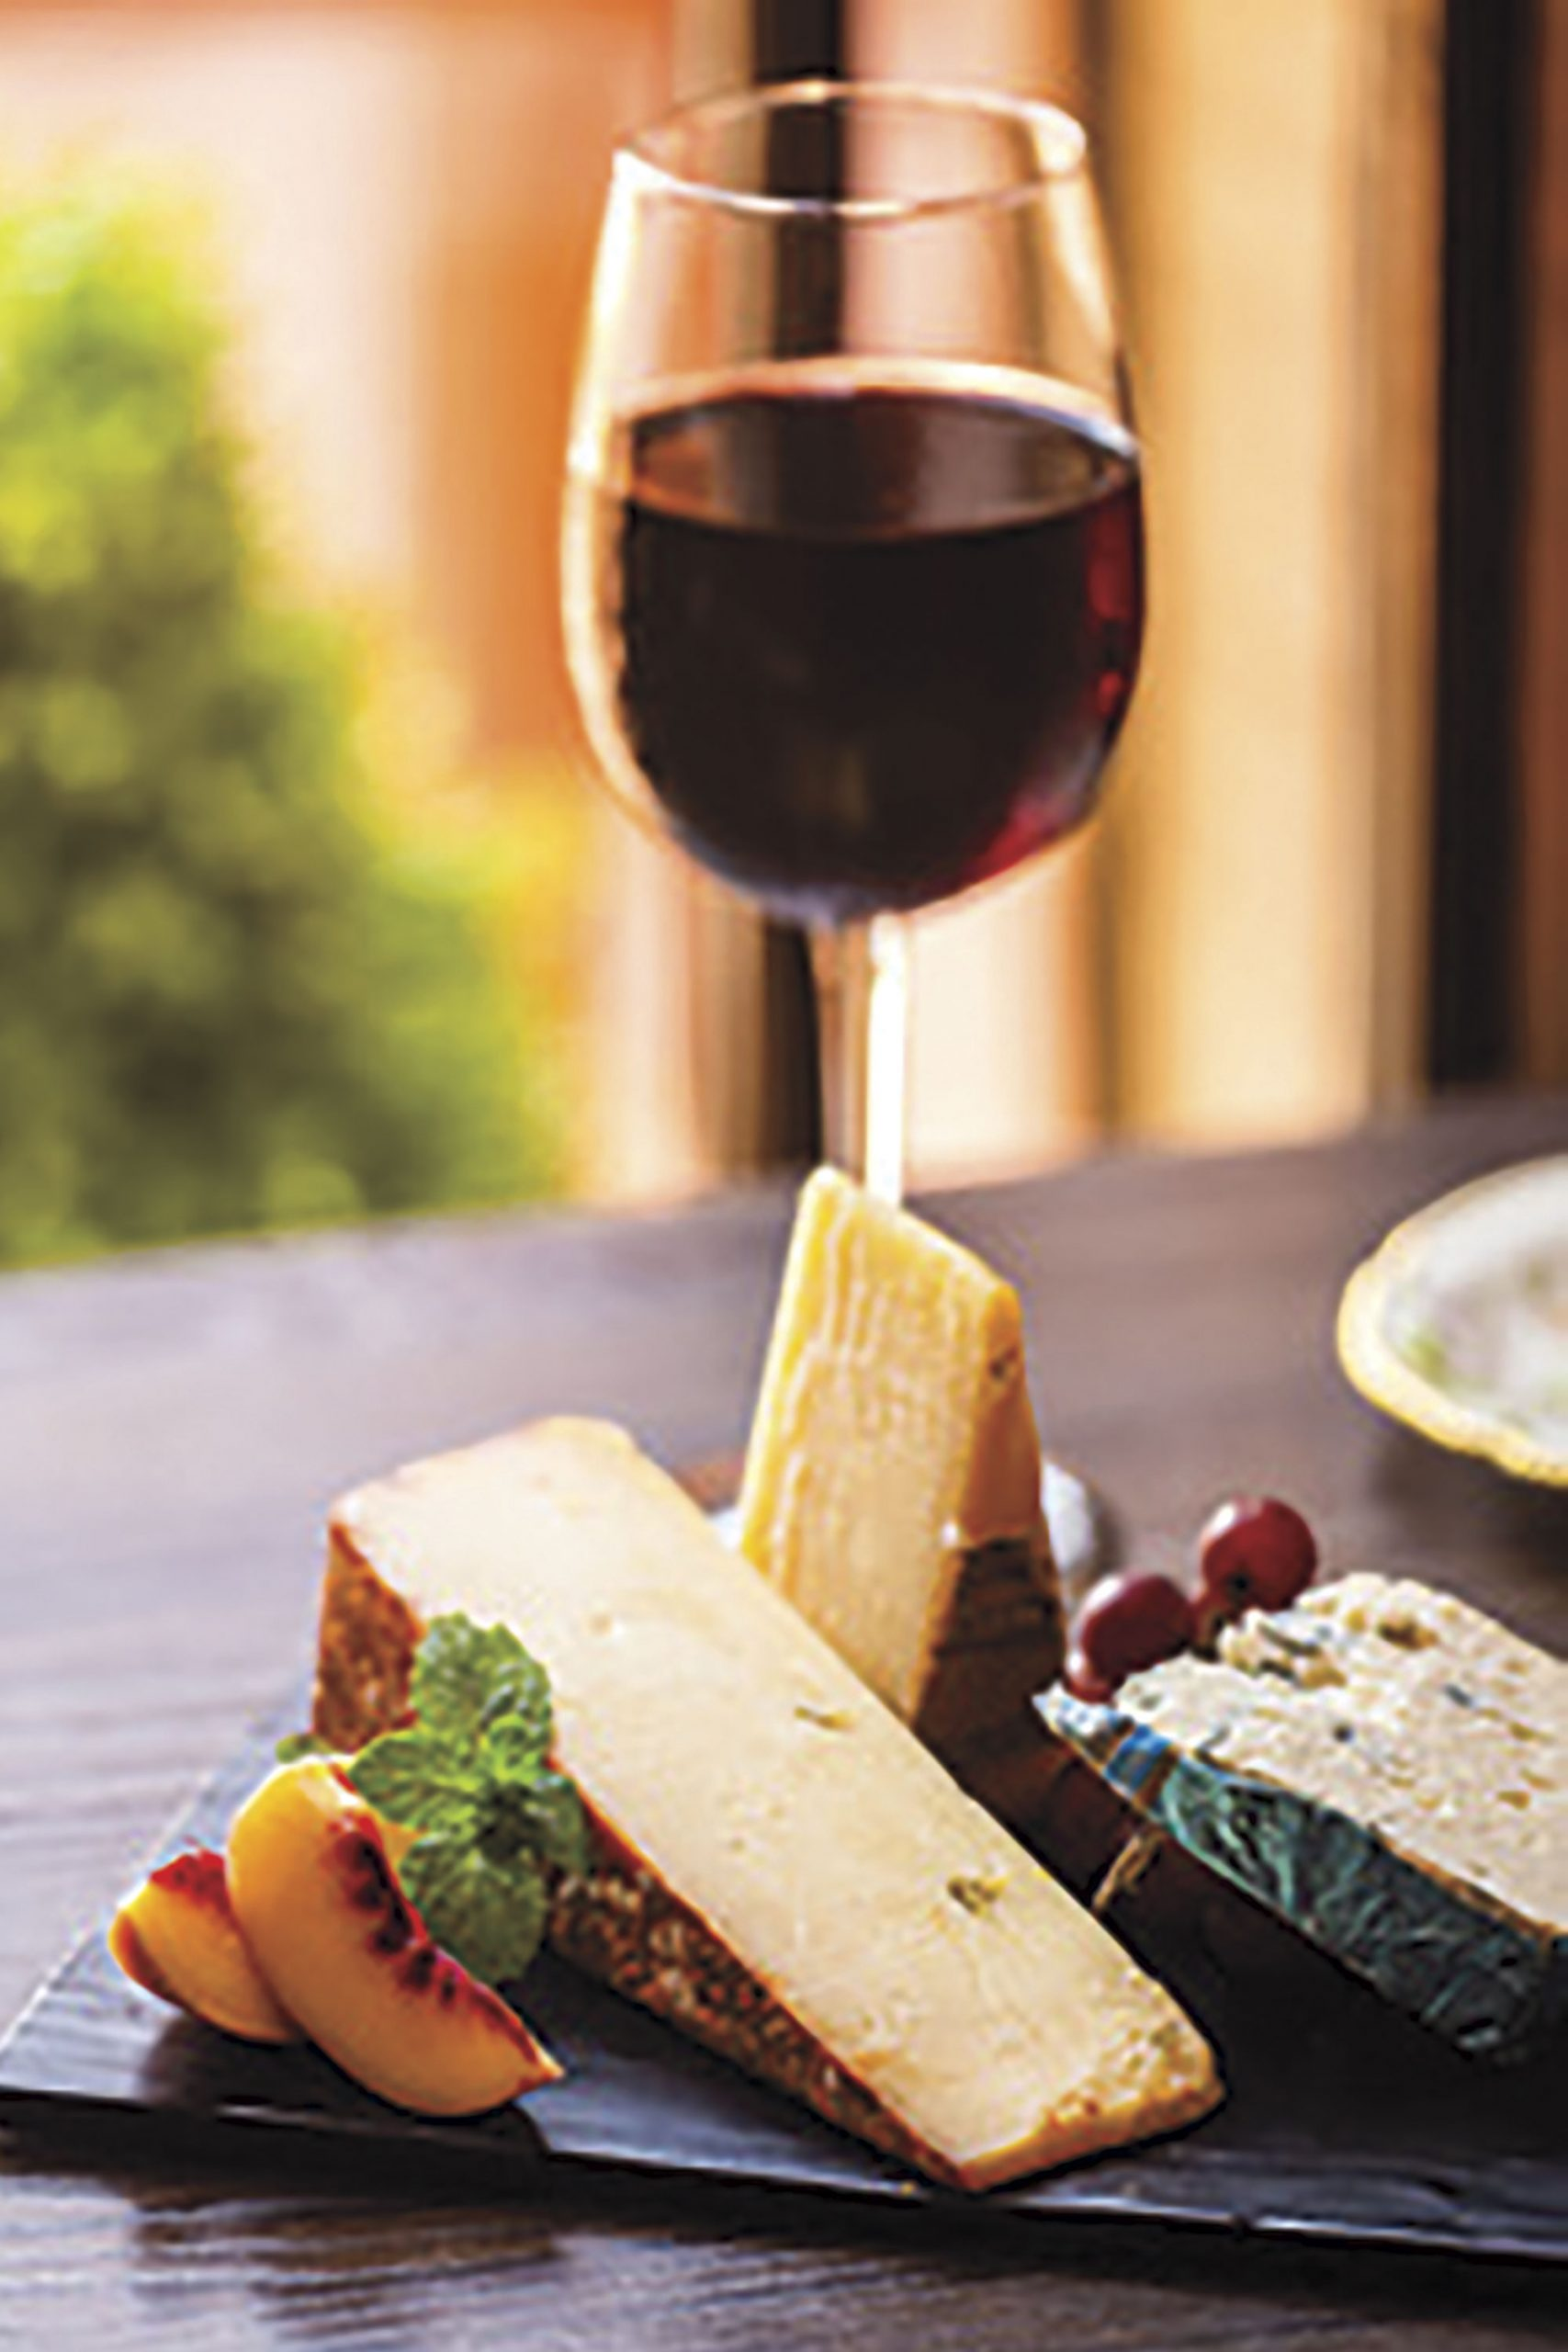 Cheeses and wine from Nomada; Photo by Nate Cooper/Courtesy Nomada